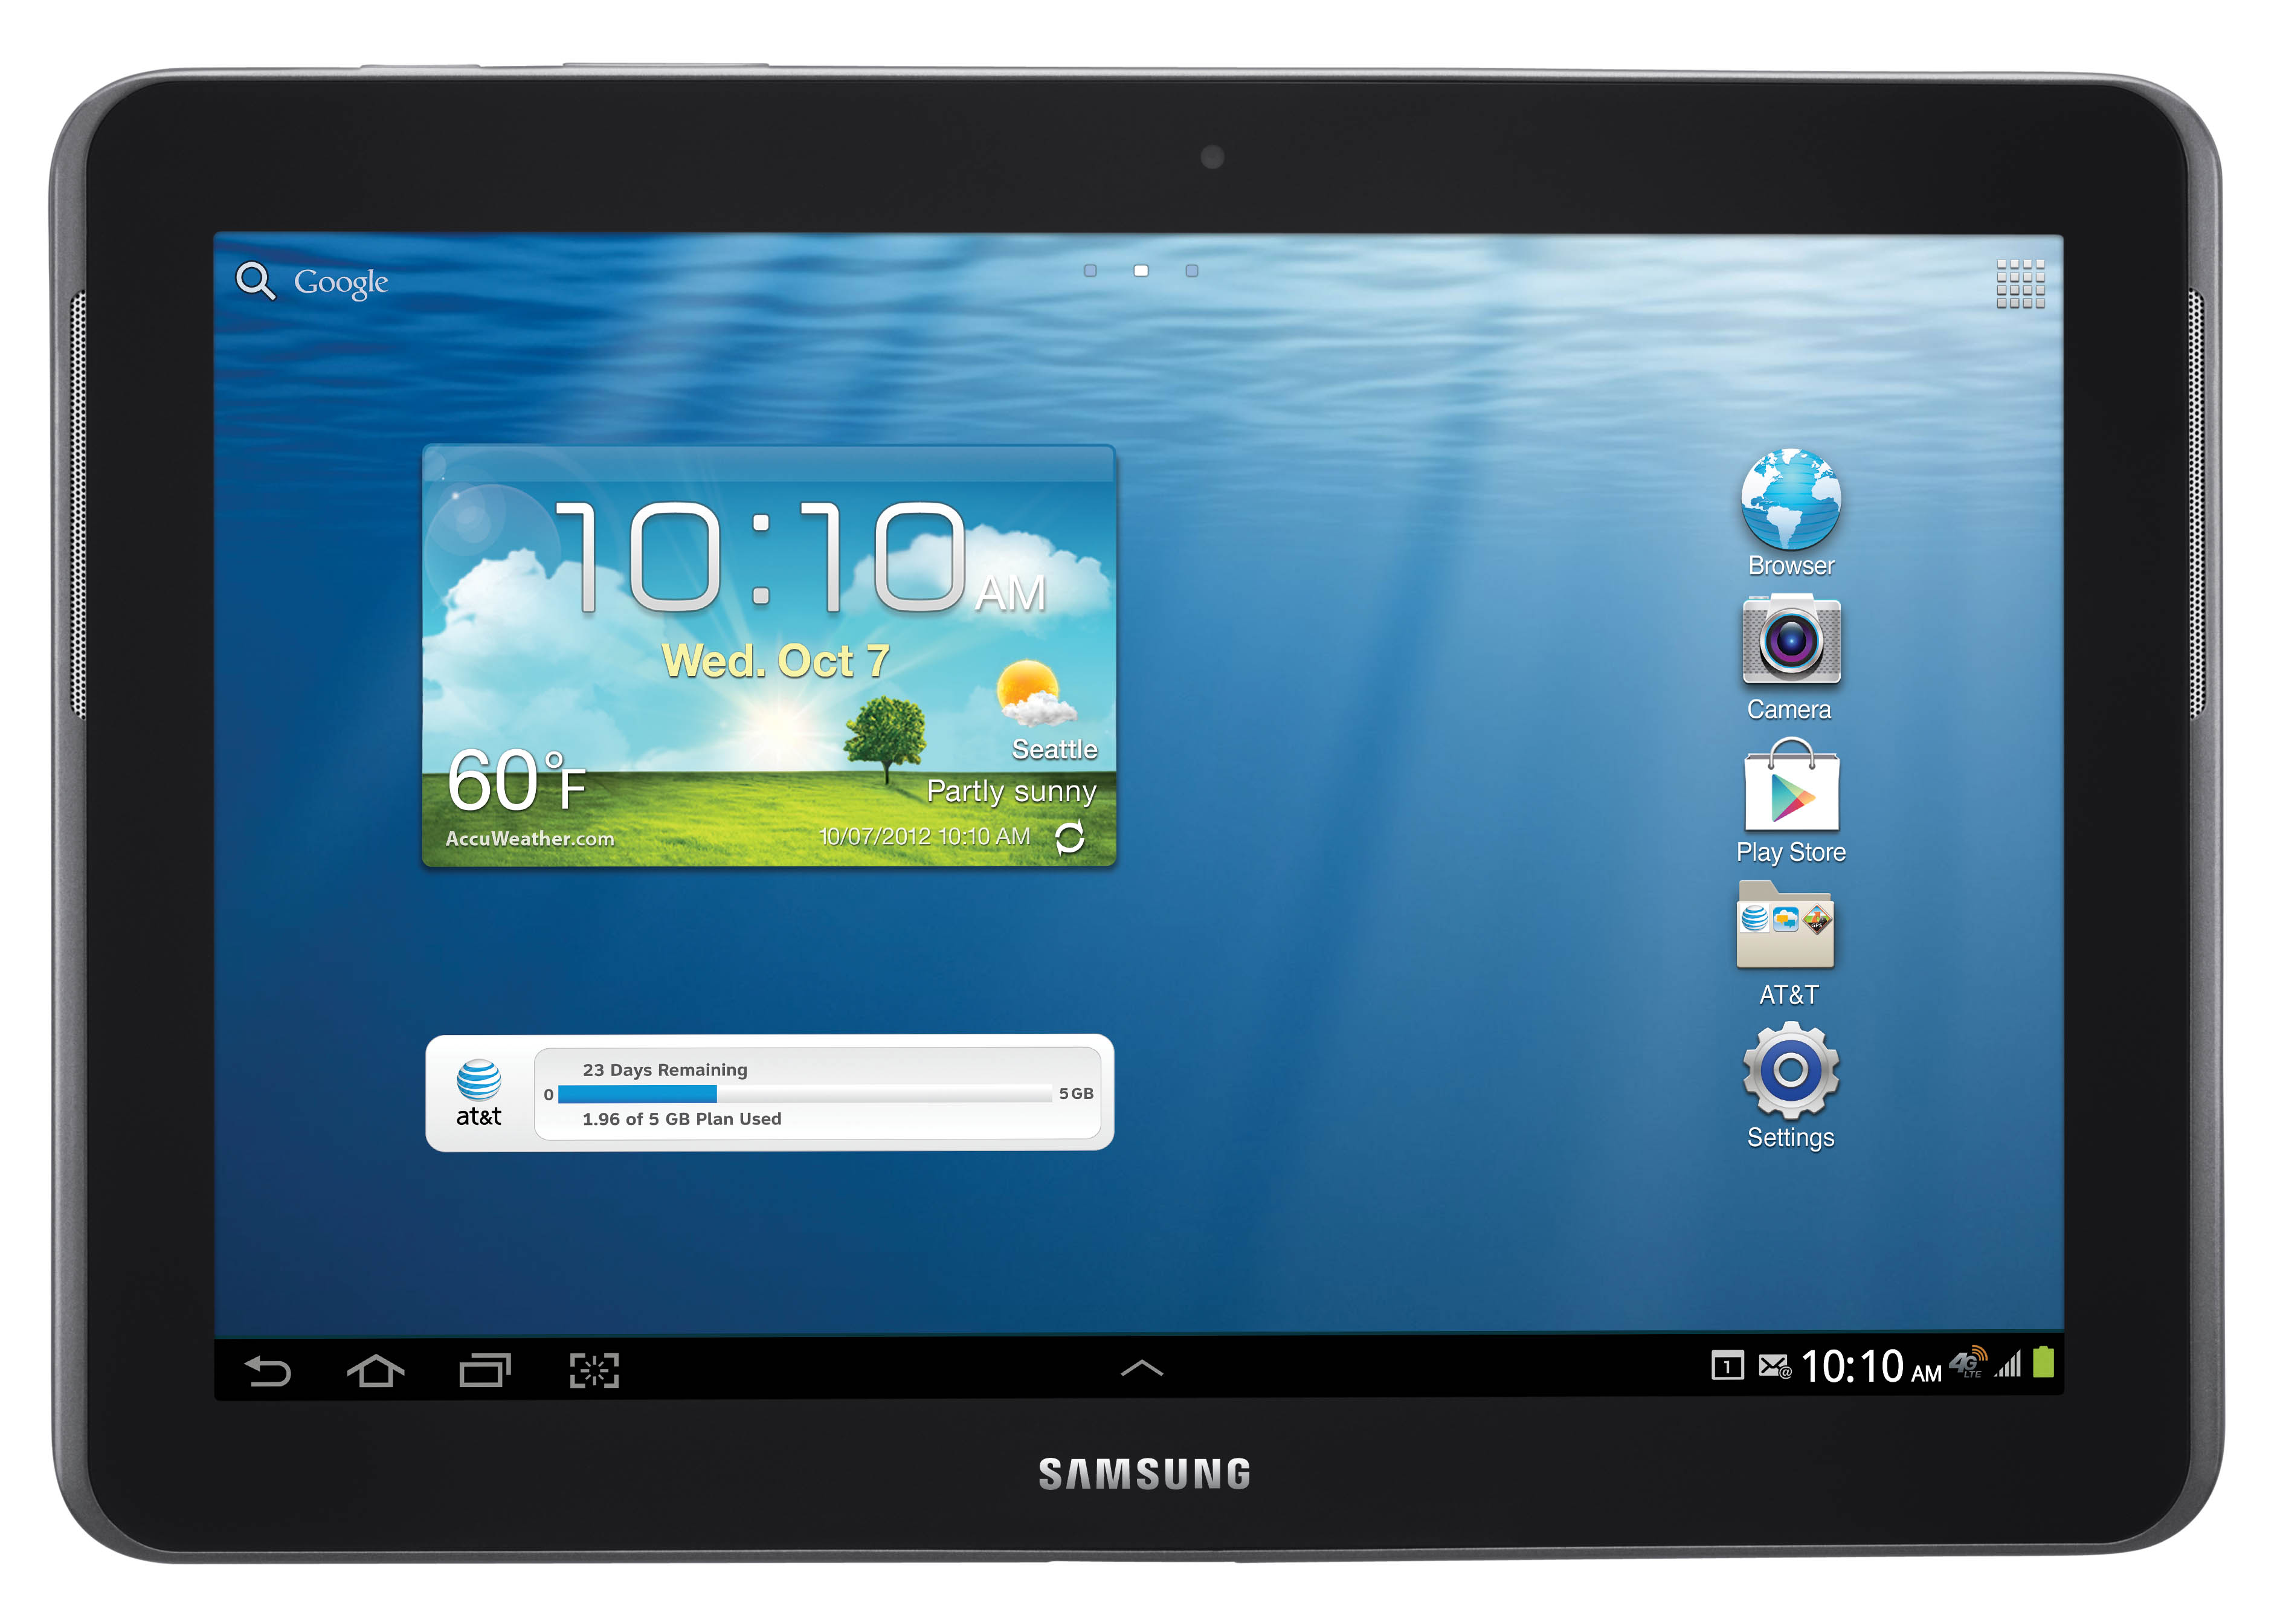 free download android games for samsung galaxy tab 2 10.1